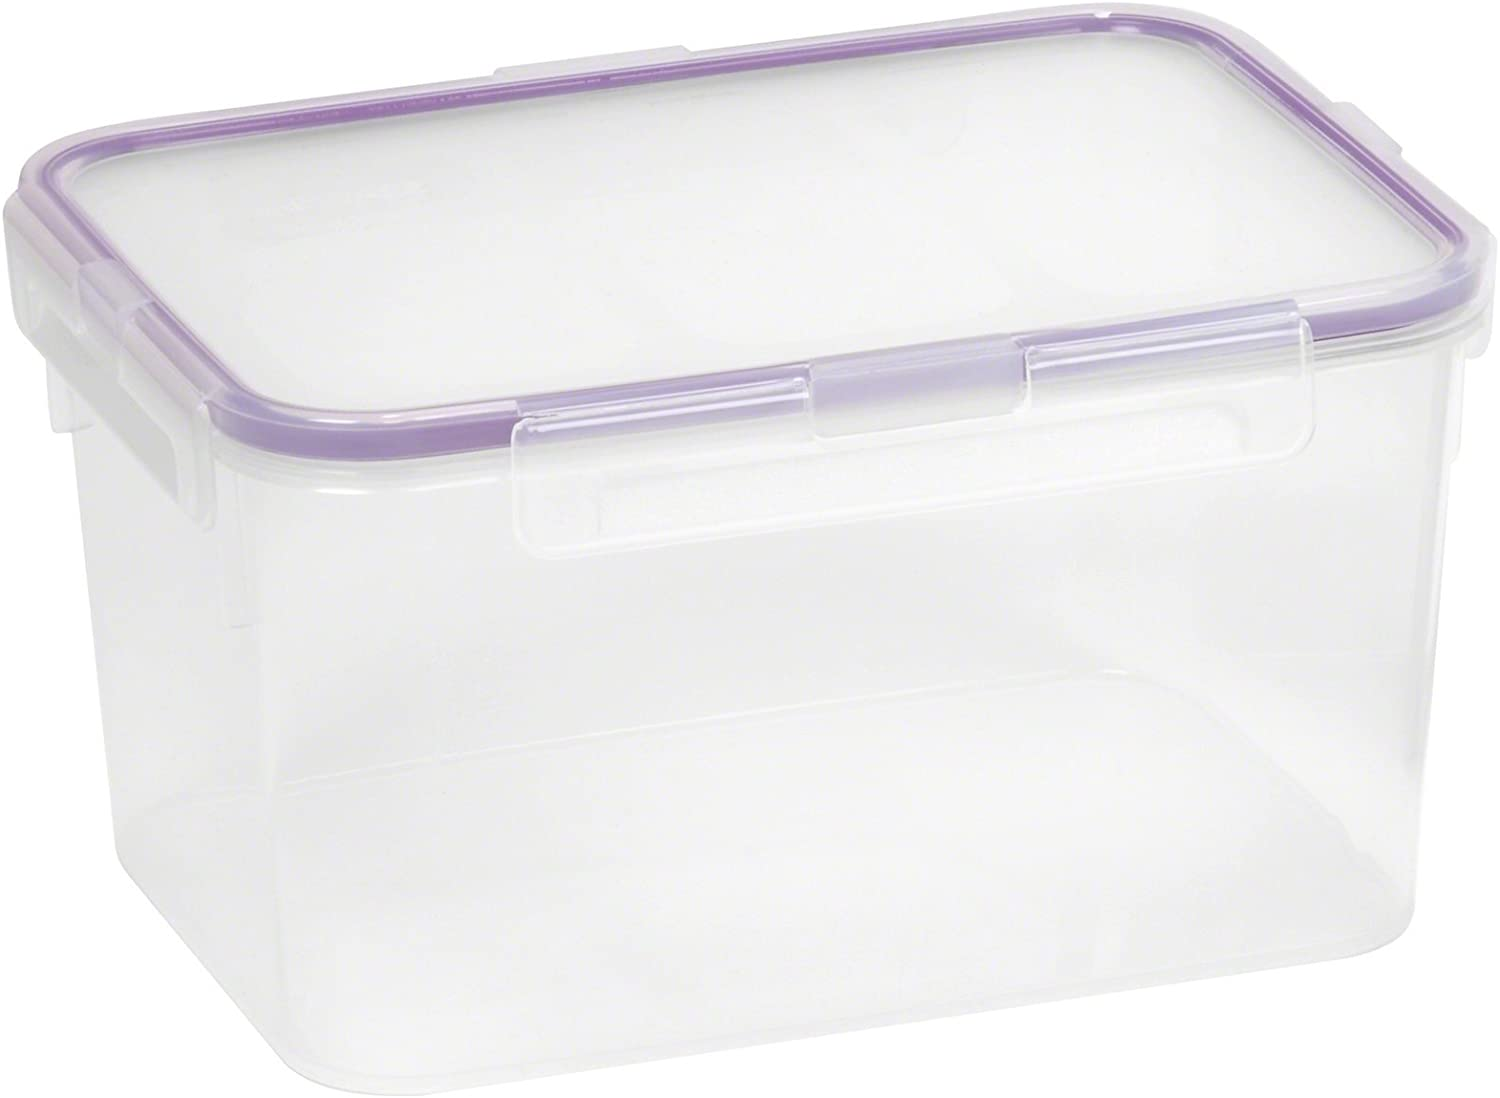 Snapware 10.8-Cup Airtight Rectangle Food Storage Container, Plastic